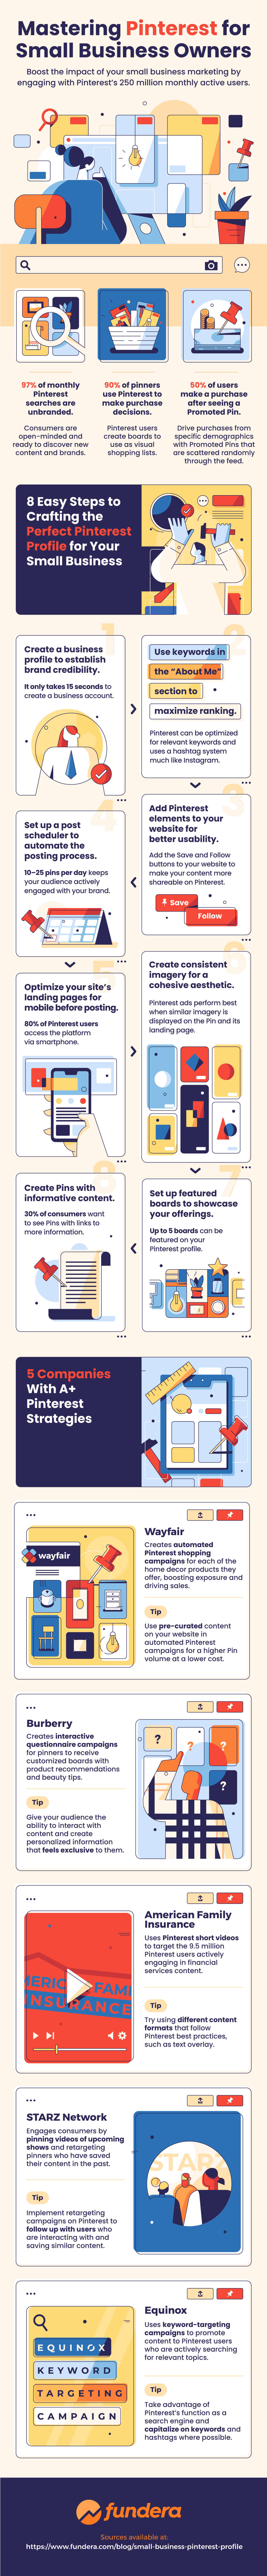 Mastering Pinterest for Small Business Owners